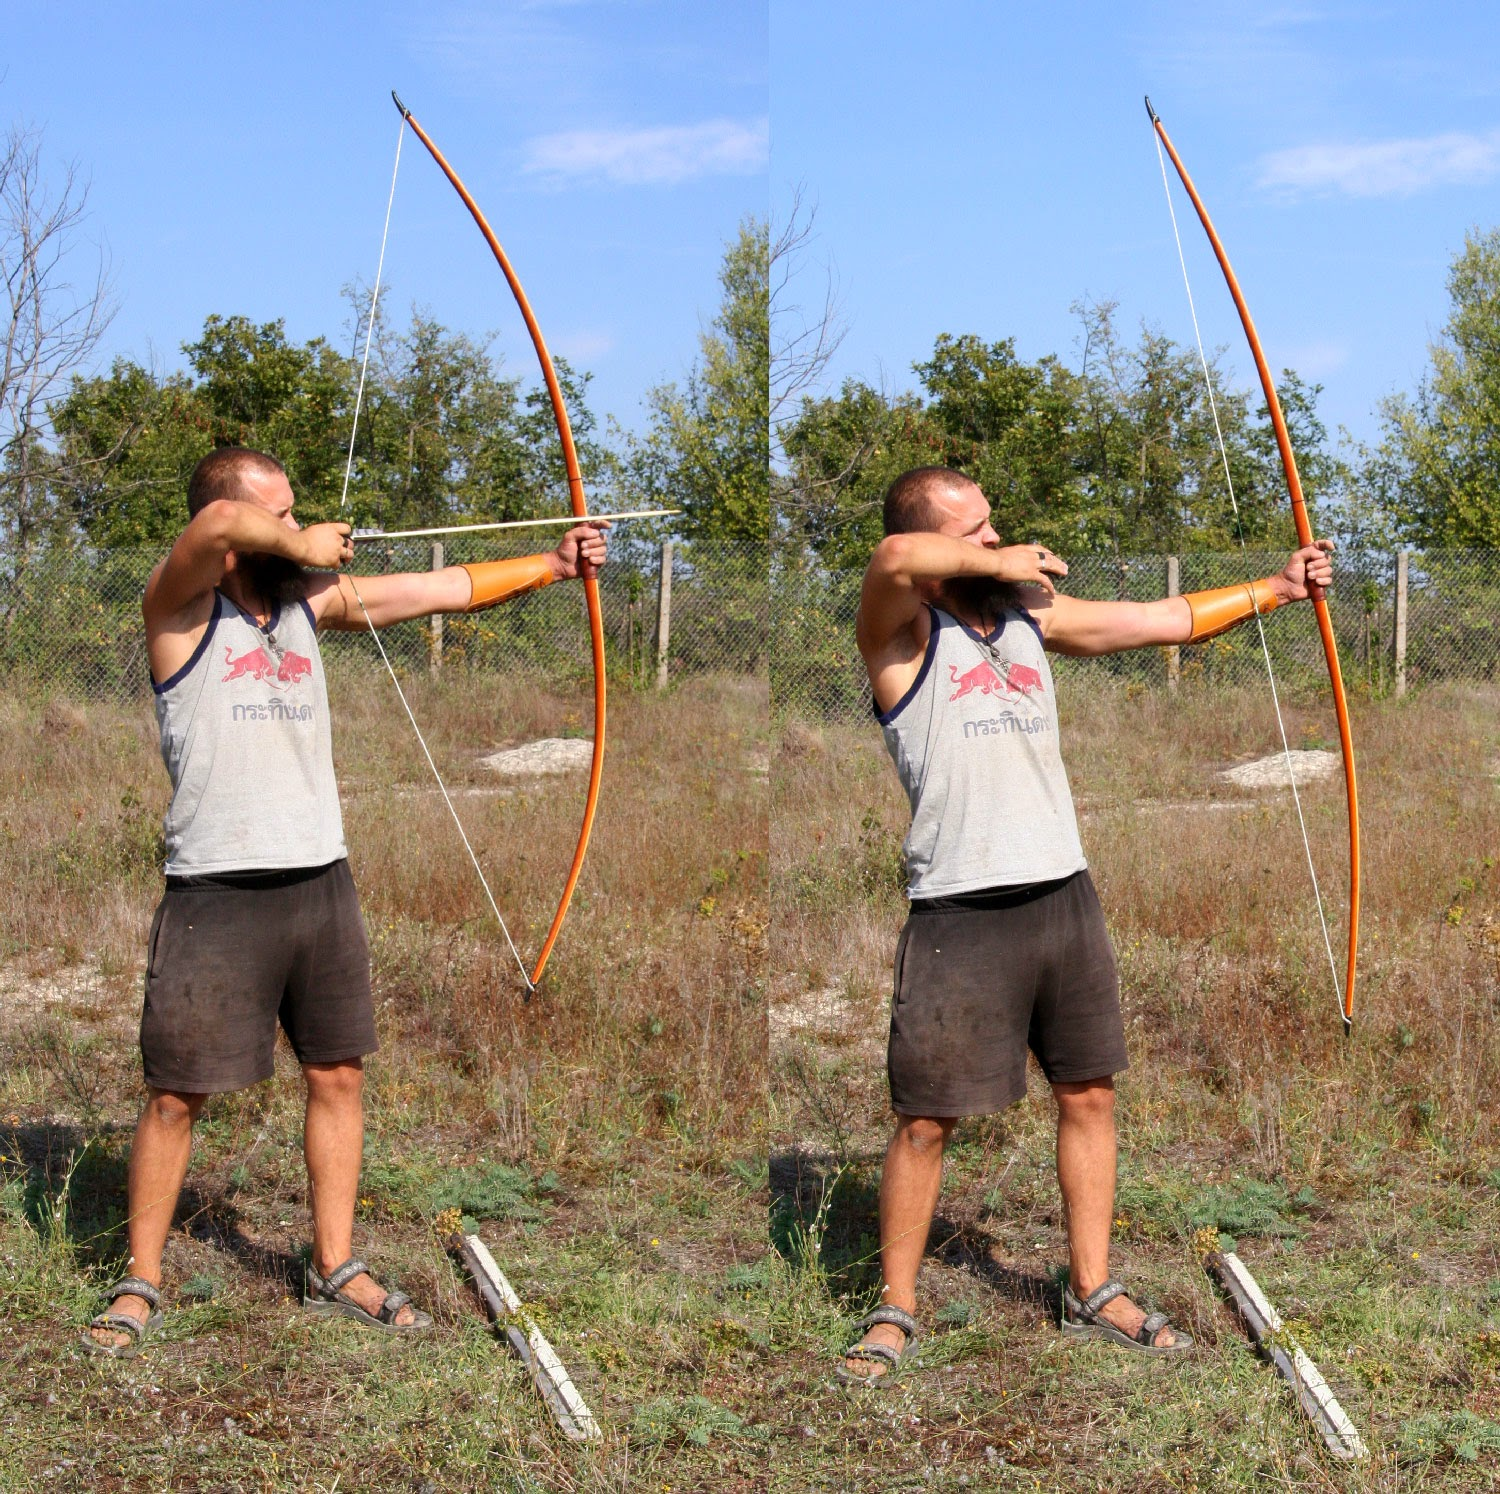 I got my longbow out